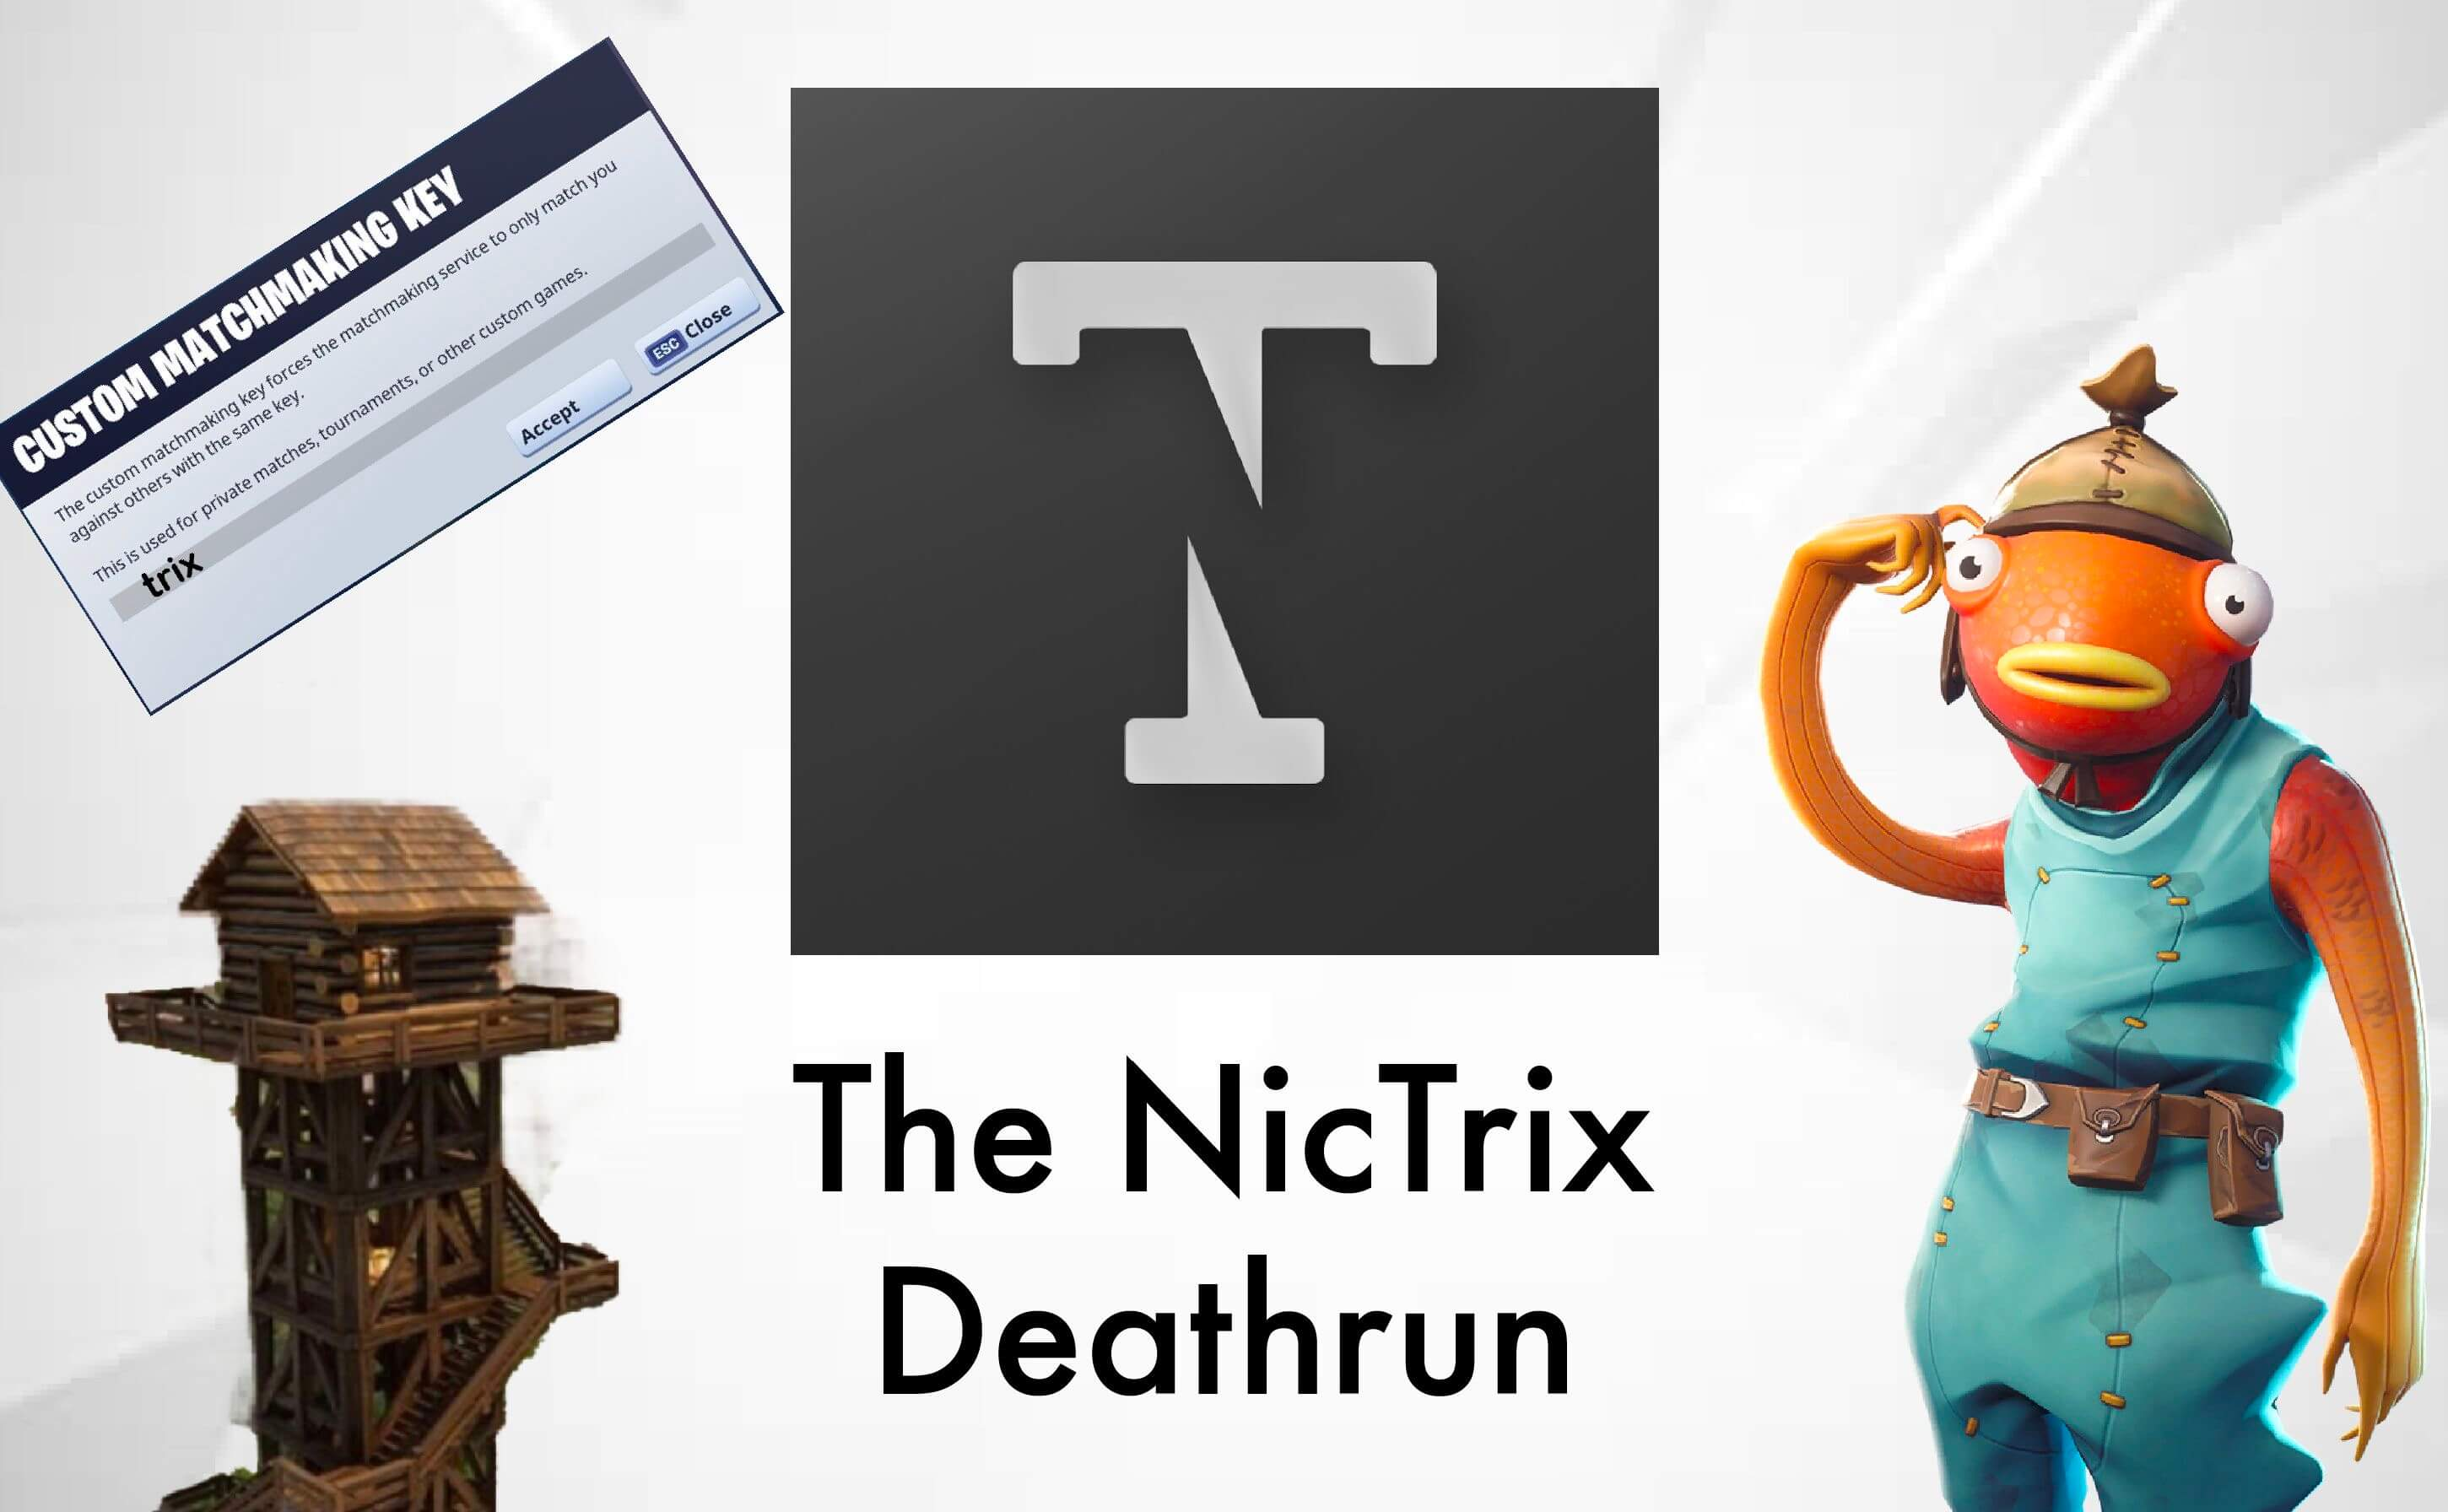 THE NICTRIX DEATHRUN